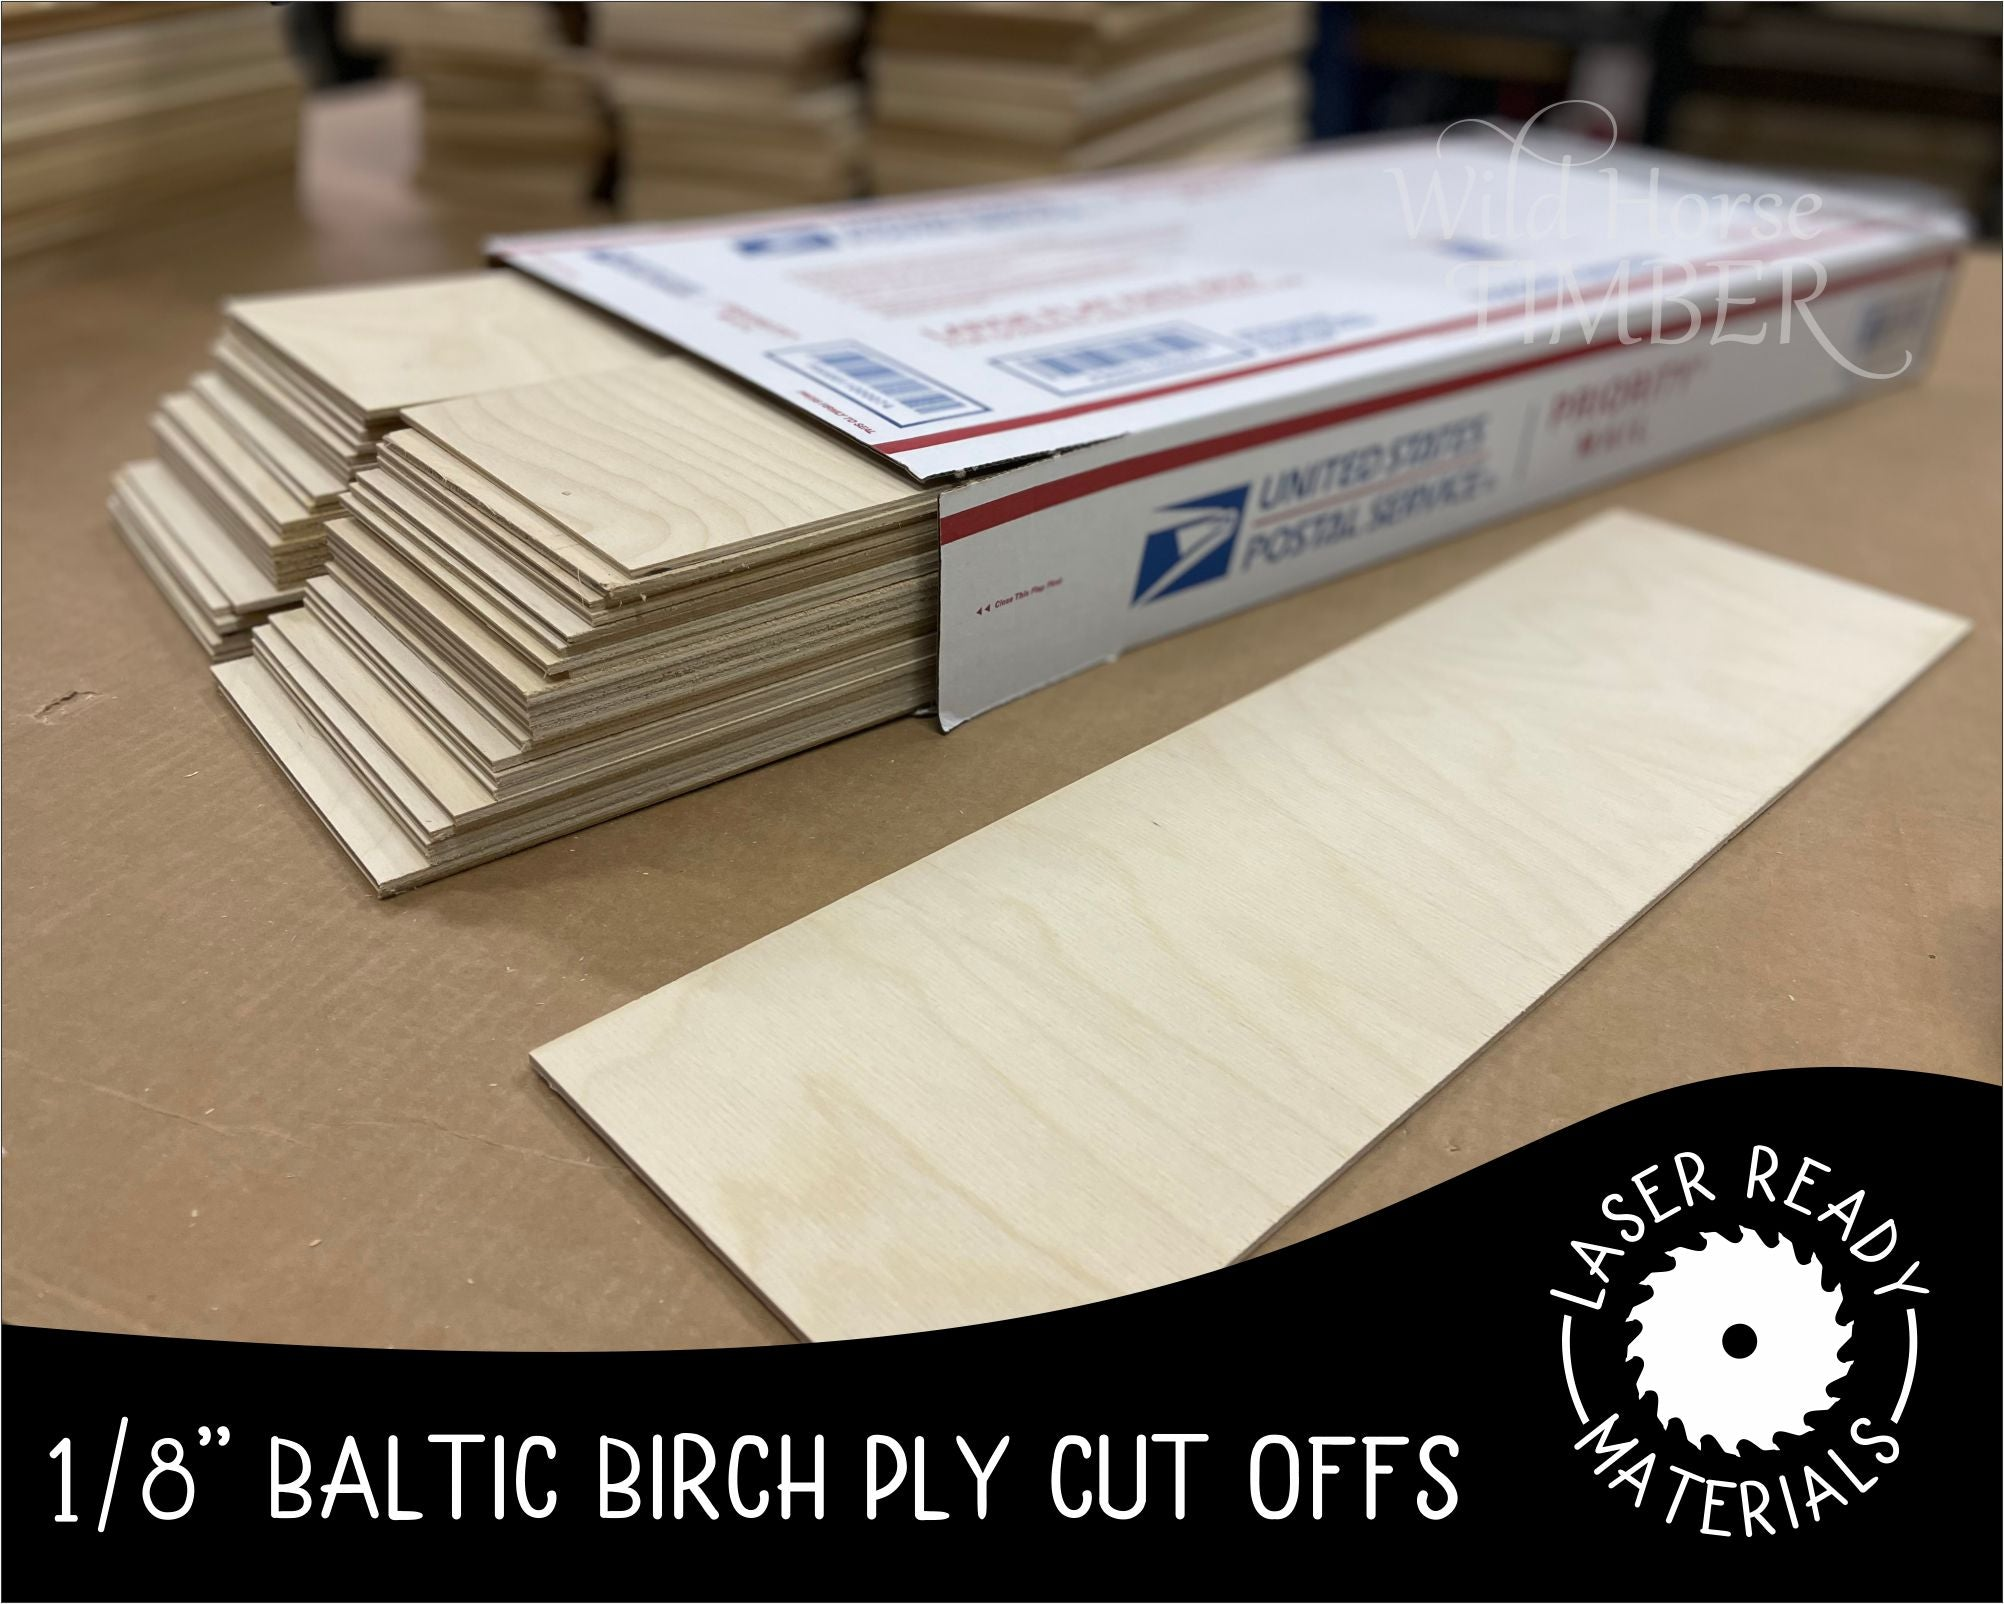 "1/8"" Baltic Birch Ply Cut Offs - 44 Sheets - Wild Horse Timber"